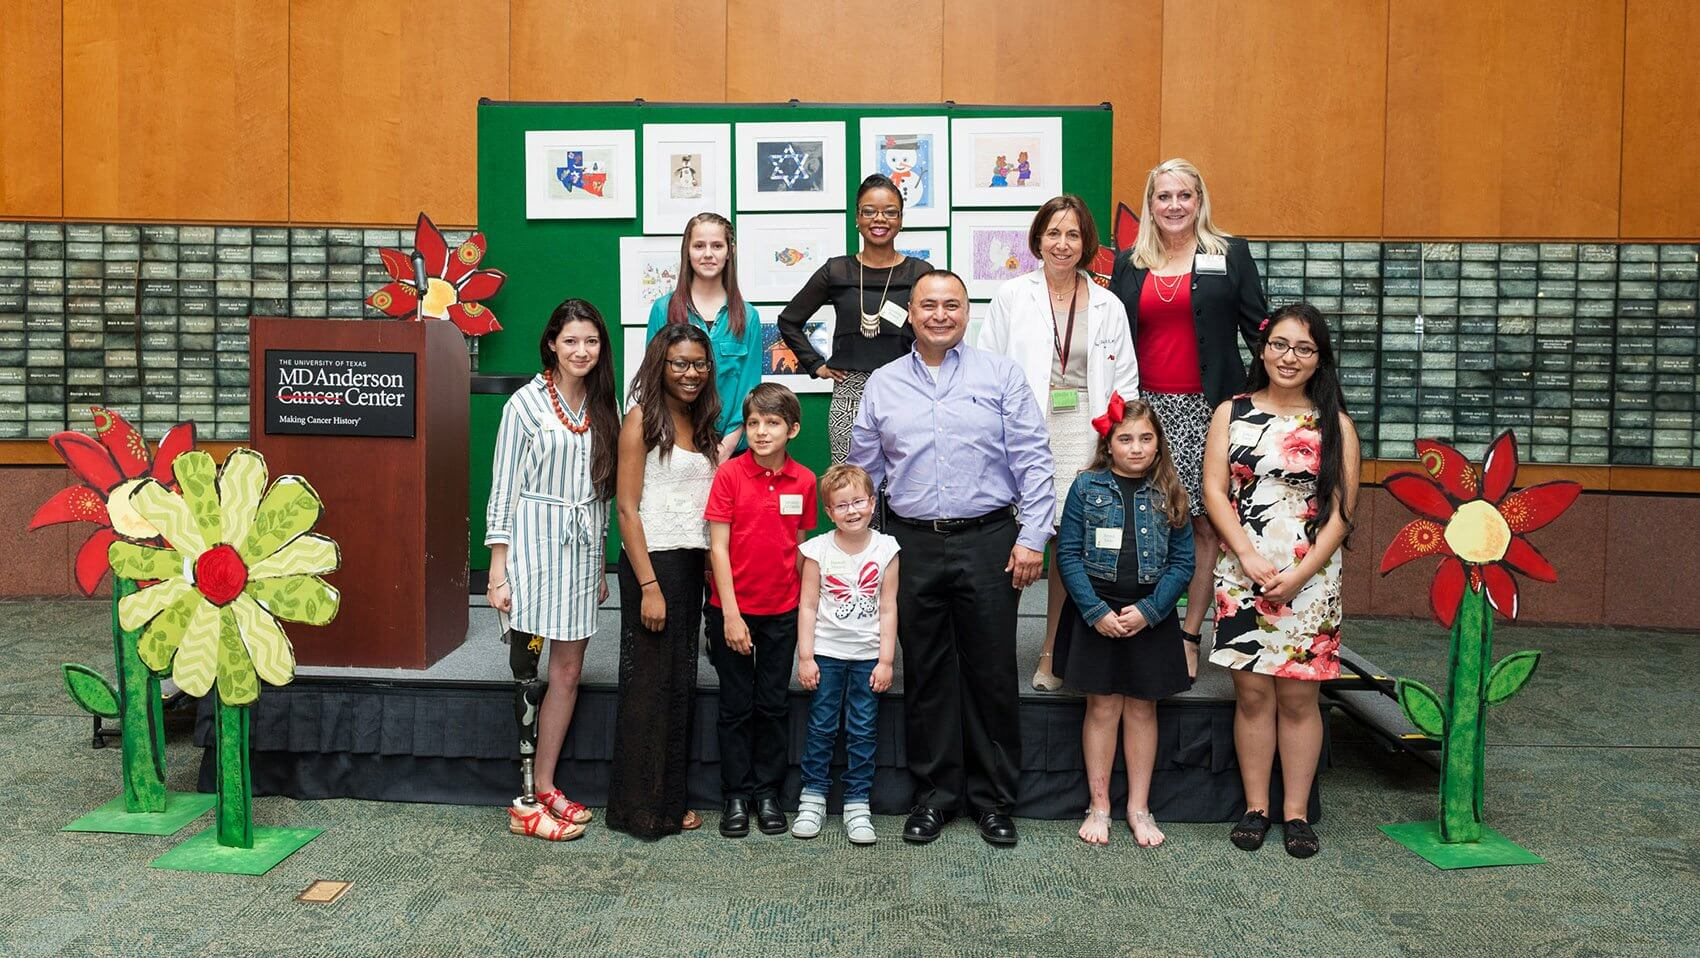 The young artists, pictured with Cindy Schwartz, M.D., Shannan Murray and Leon Benavides. (Credit: MD Anderson Cancer Center)